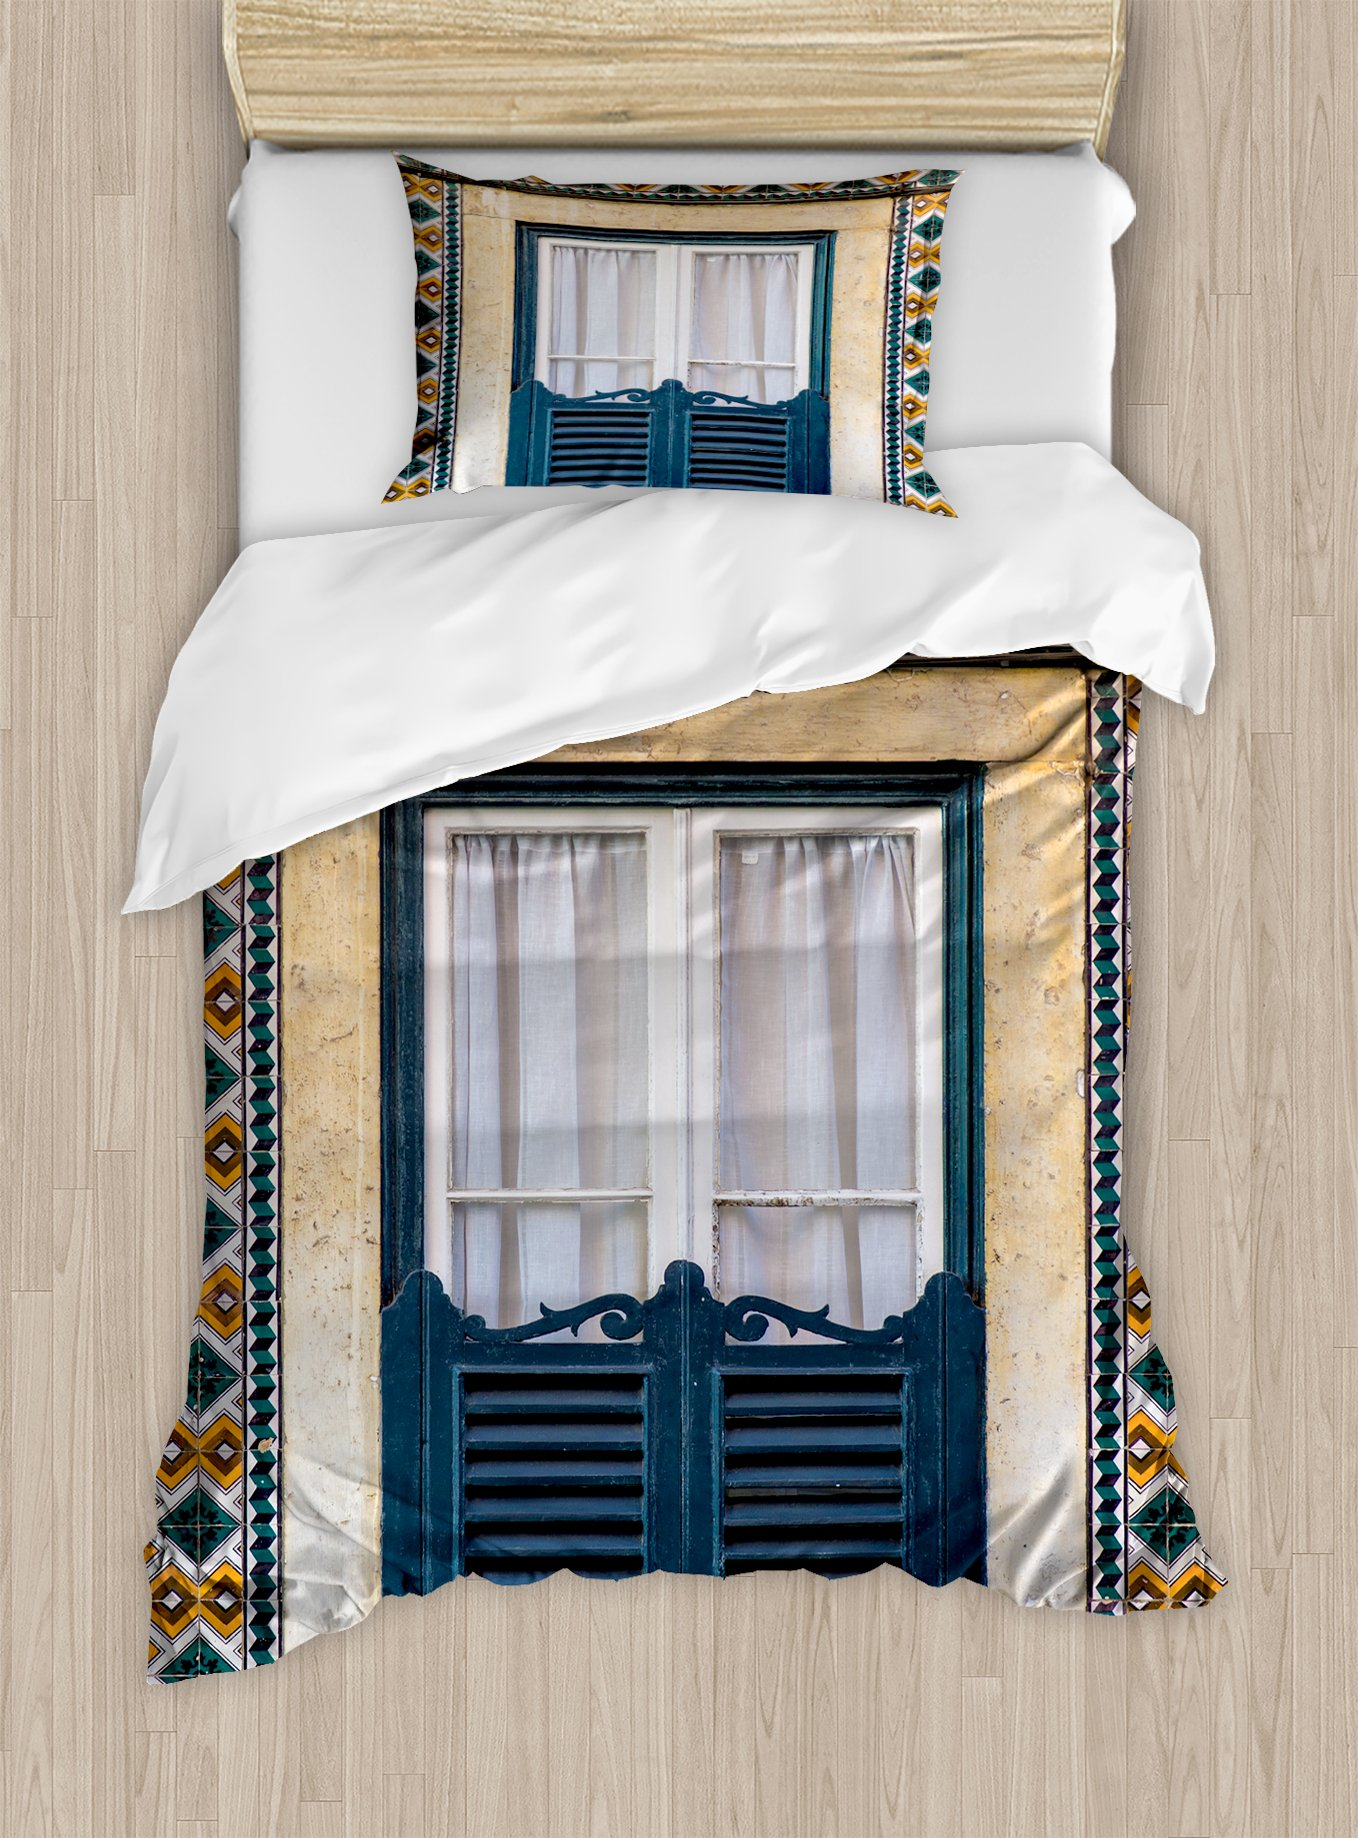 Ambesonne Shutters Duvet Cover Set Twin Size, Window of Old Architecture in Lisbon Portugal Touristic Town Cultural Nostalgic, Decorative 2 Piece Bedding Set with 1 Pillow Sham, Teal Orange